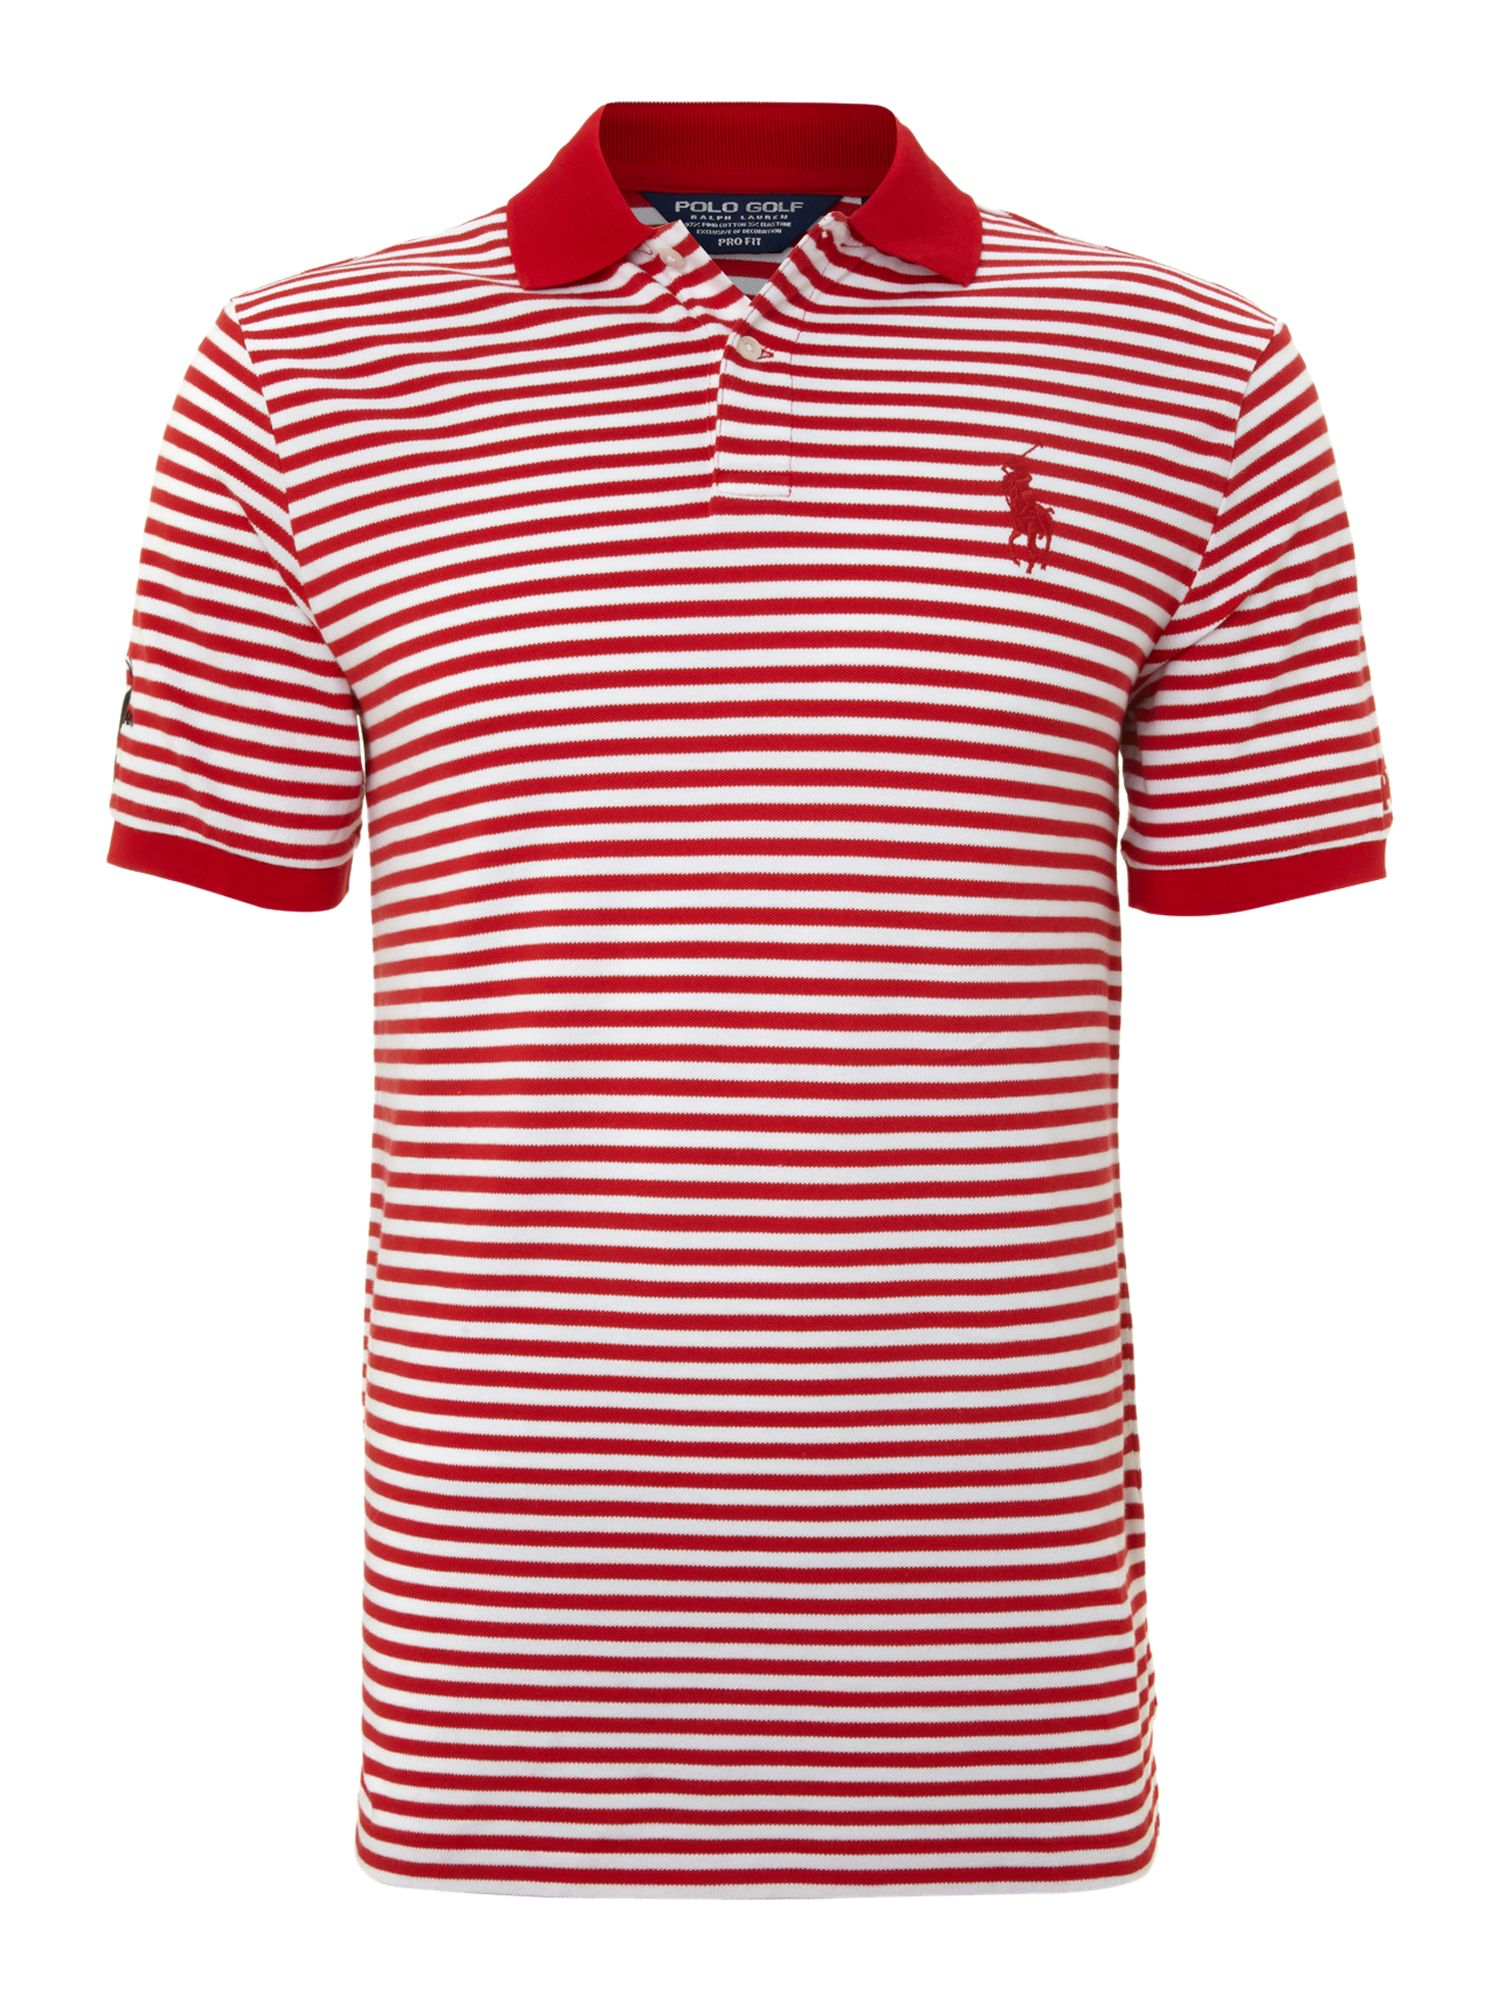 Ralph lauren golf open striped big pony polo shirt in red for Red white striped polo shirt